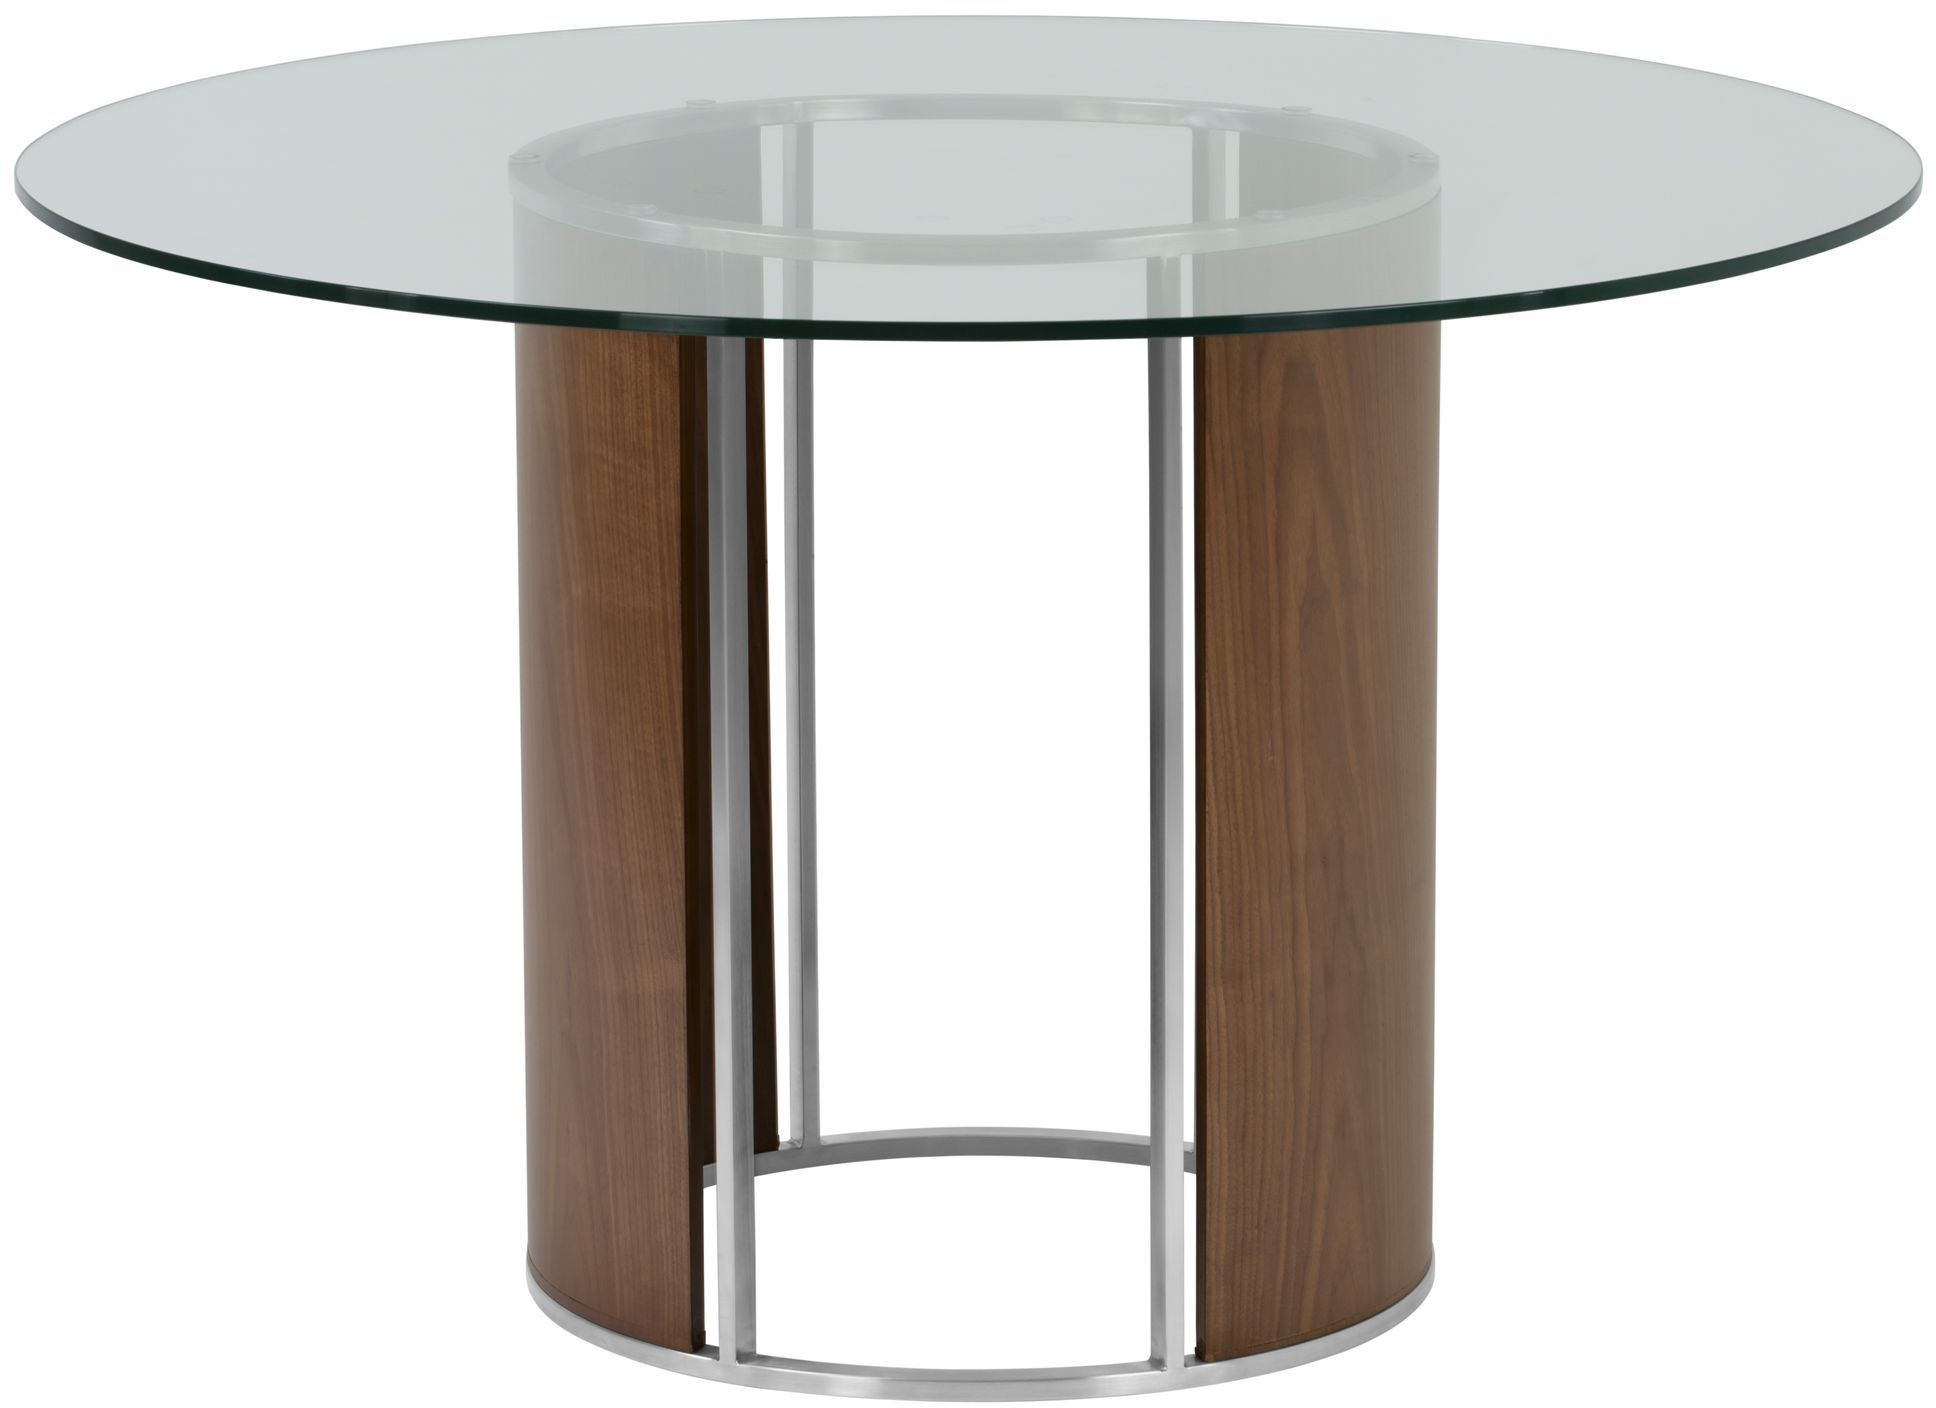 Delano clear tempered glass top round dining table from for Tempered glass dining table